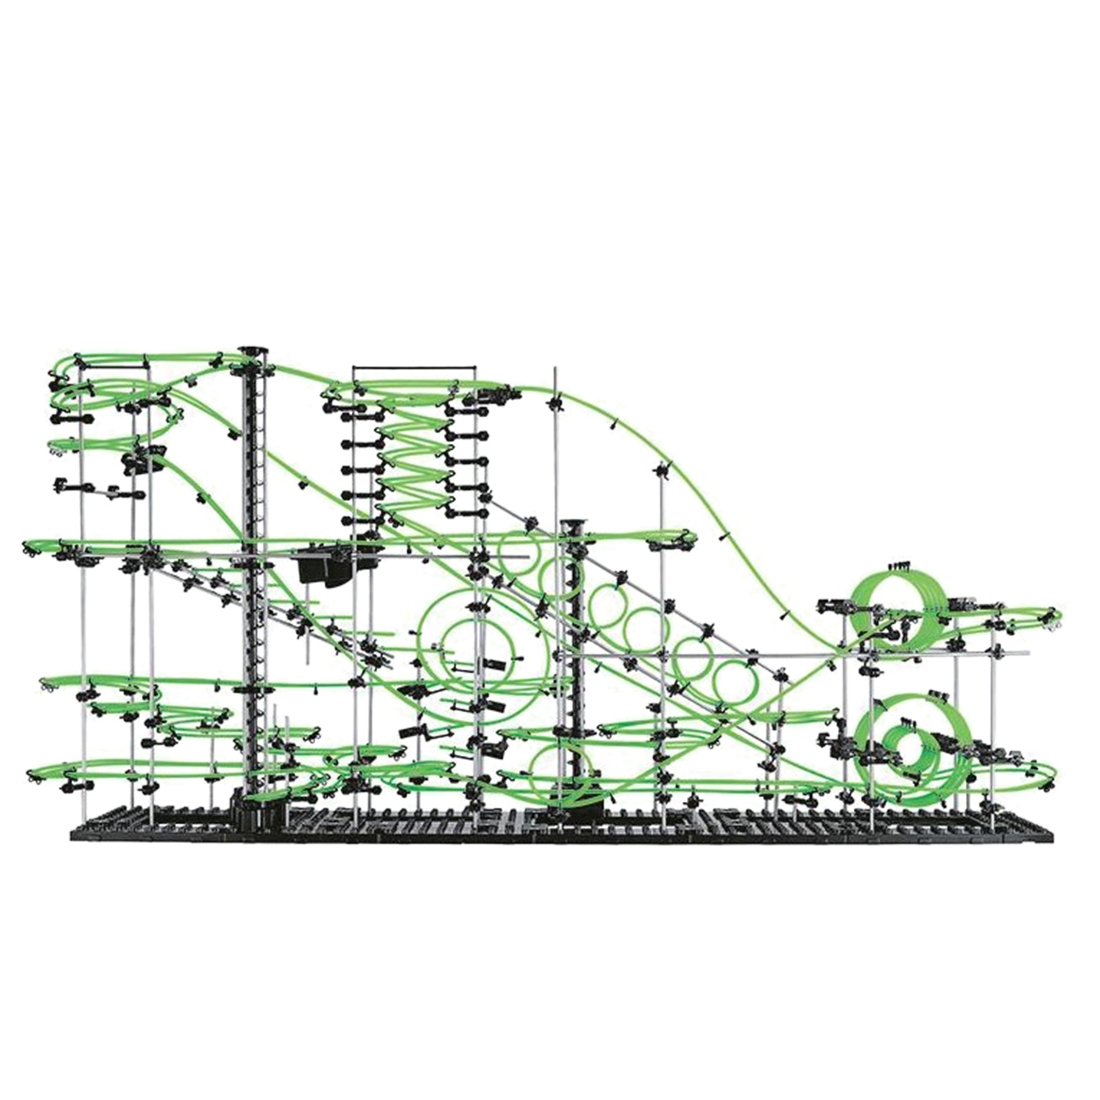 1337pcs/879pcs/848pcs/699pcs Level 8 7 6 5 Marble Roller Coaster Kit Space Rail With 8/6/5 Steel Balls Glow In The Dark For Kids